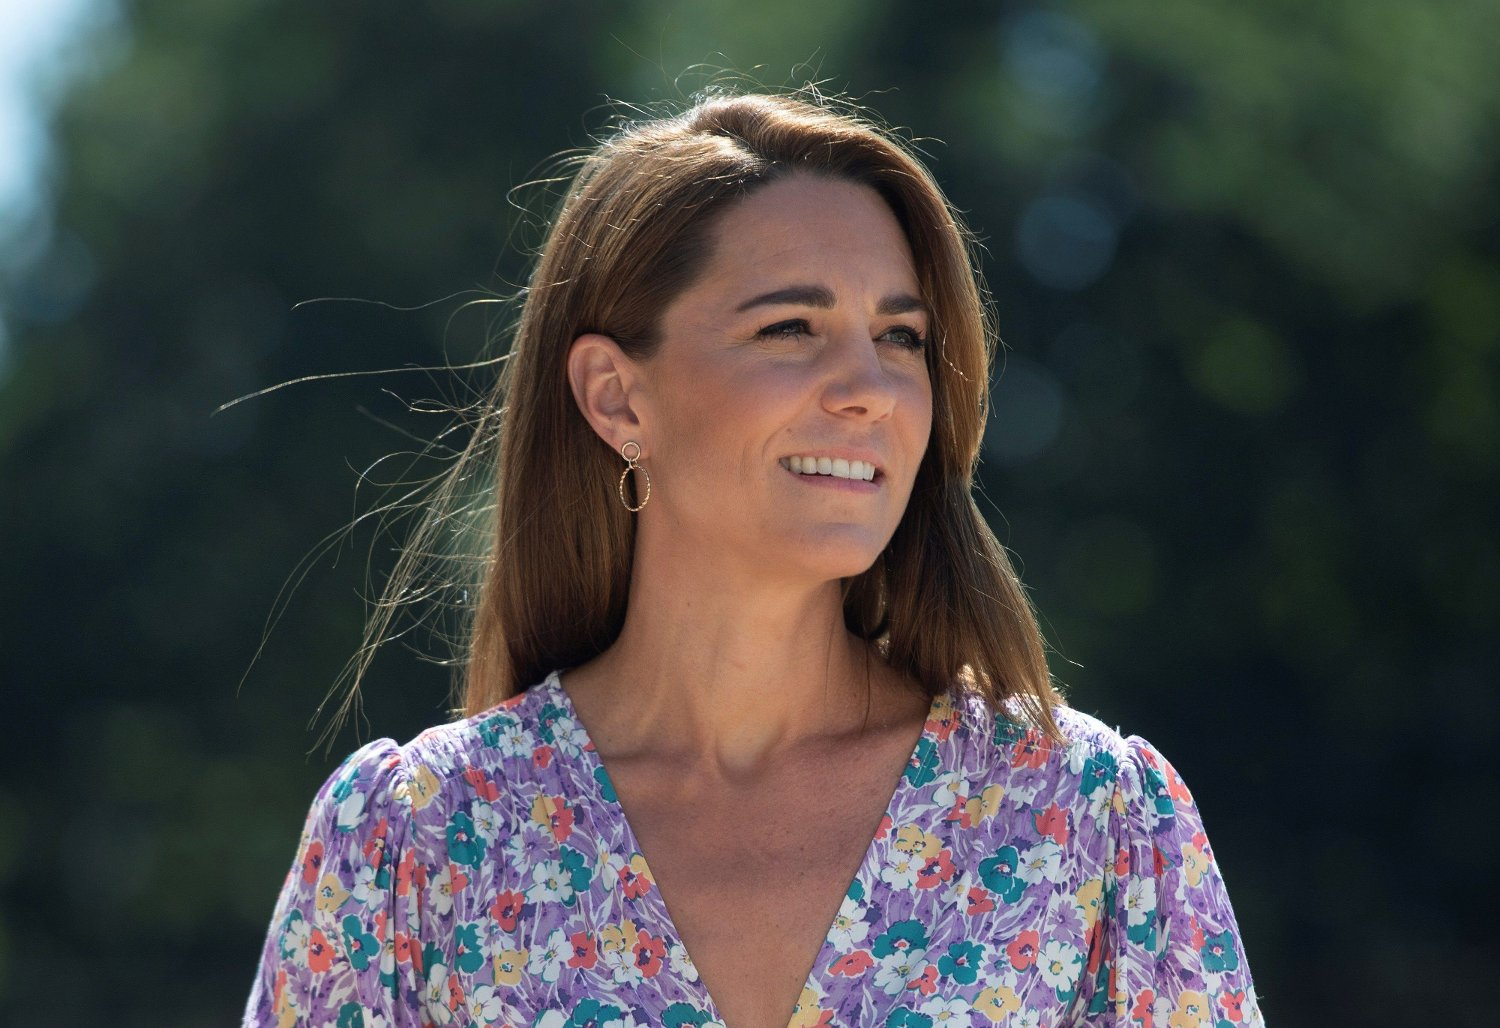 KJOLE: Kate Middleton hadd